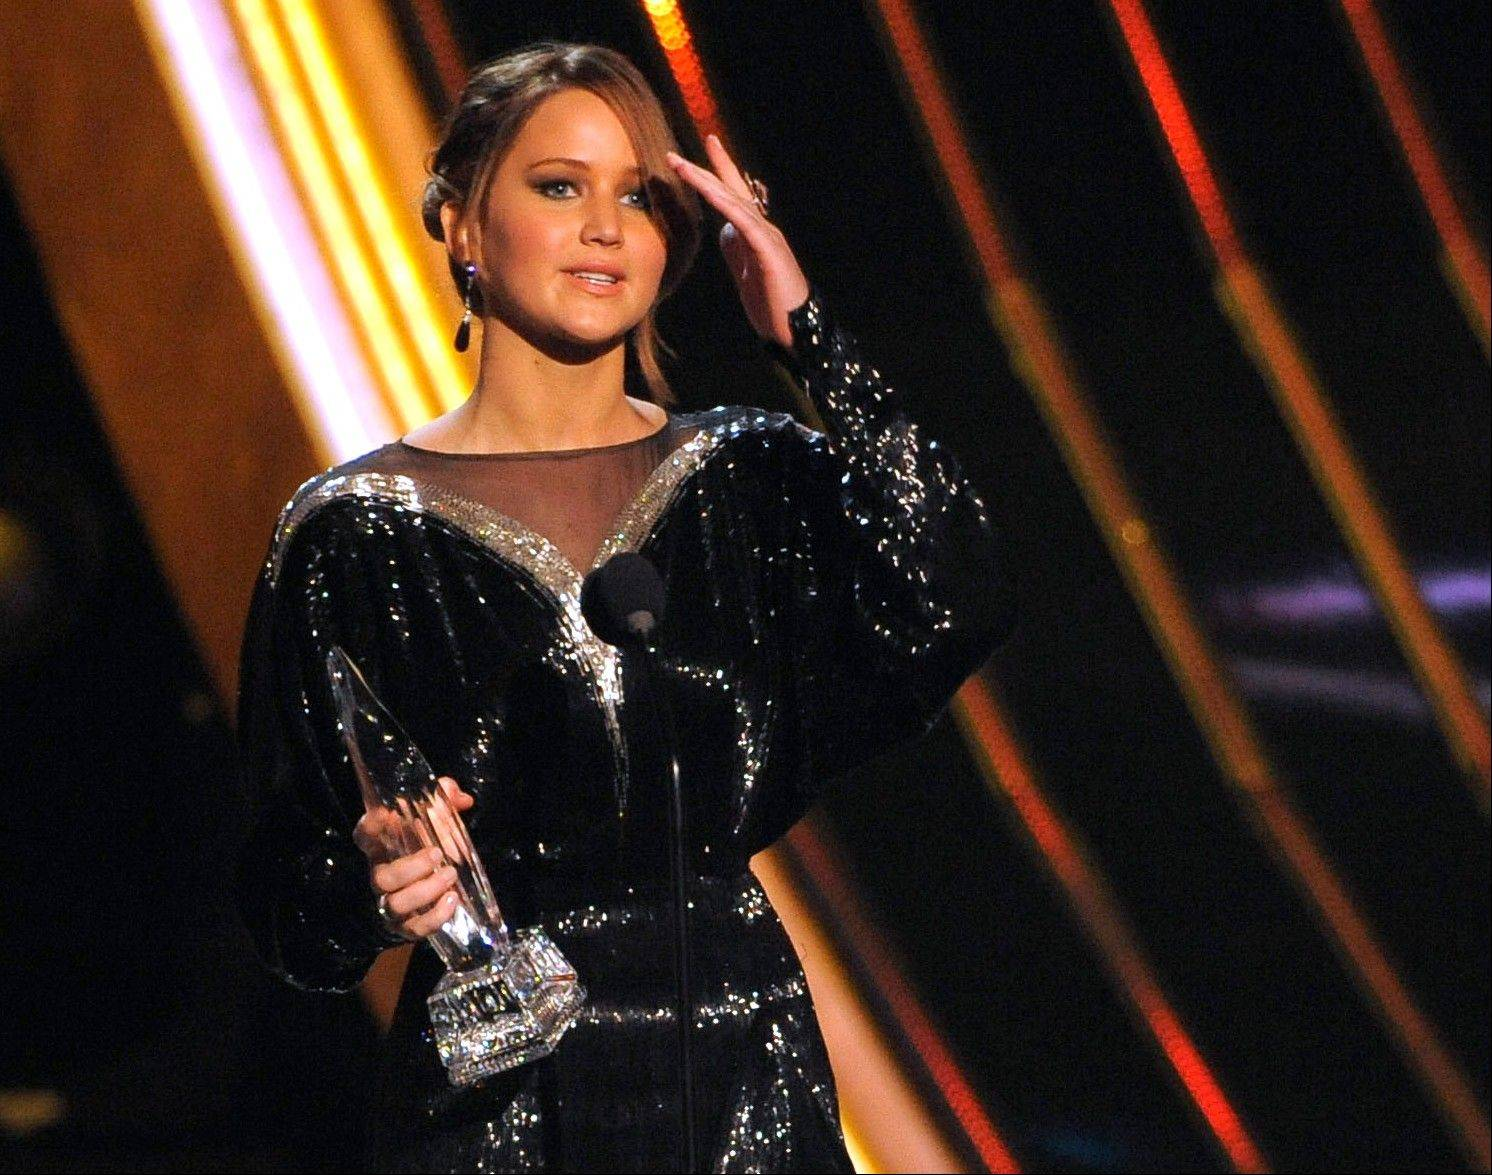 Jennifer Lawrence accepts the award for favorite movie actress at the People's Choice Awards at the Nokia Theatre on Wednesday Jan. 9, 2013, in Los Angeles.